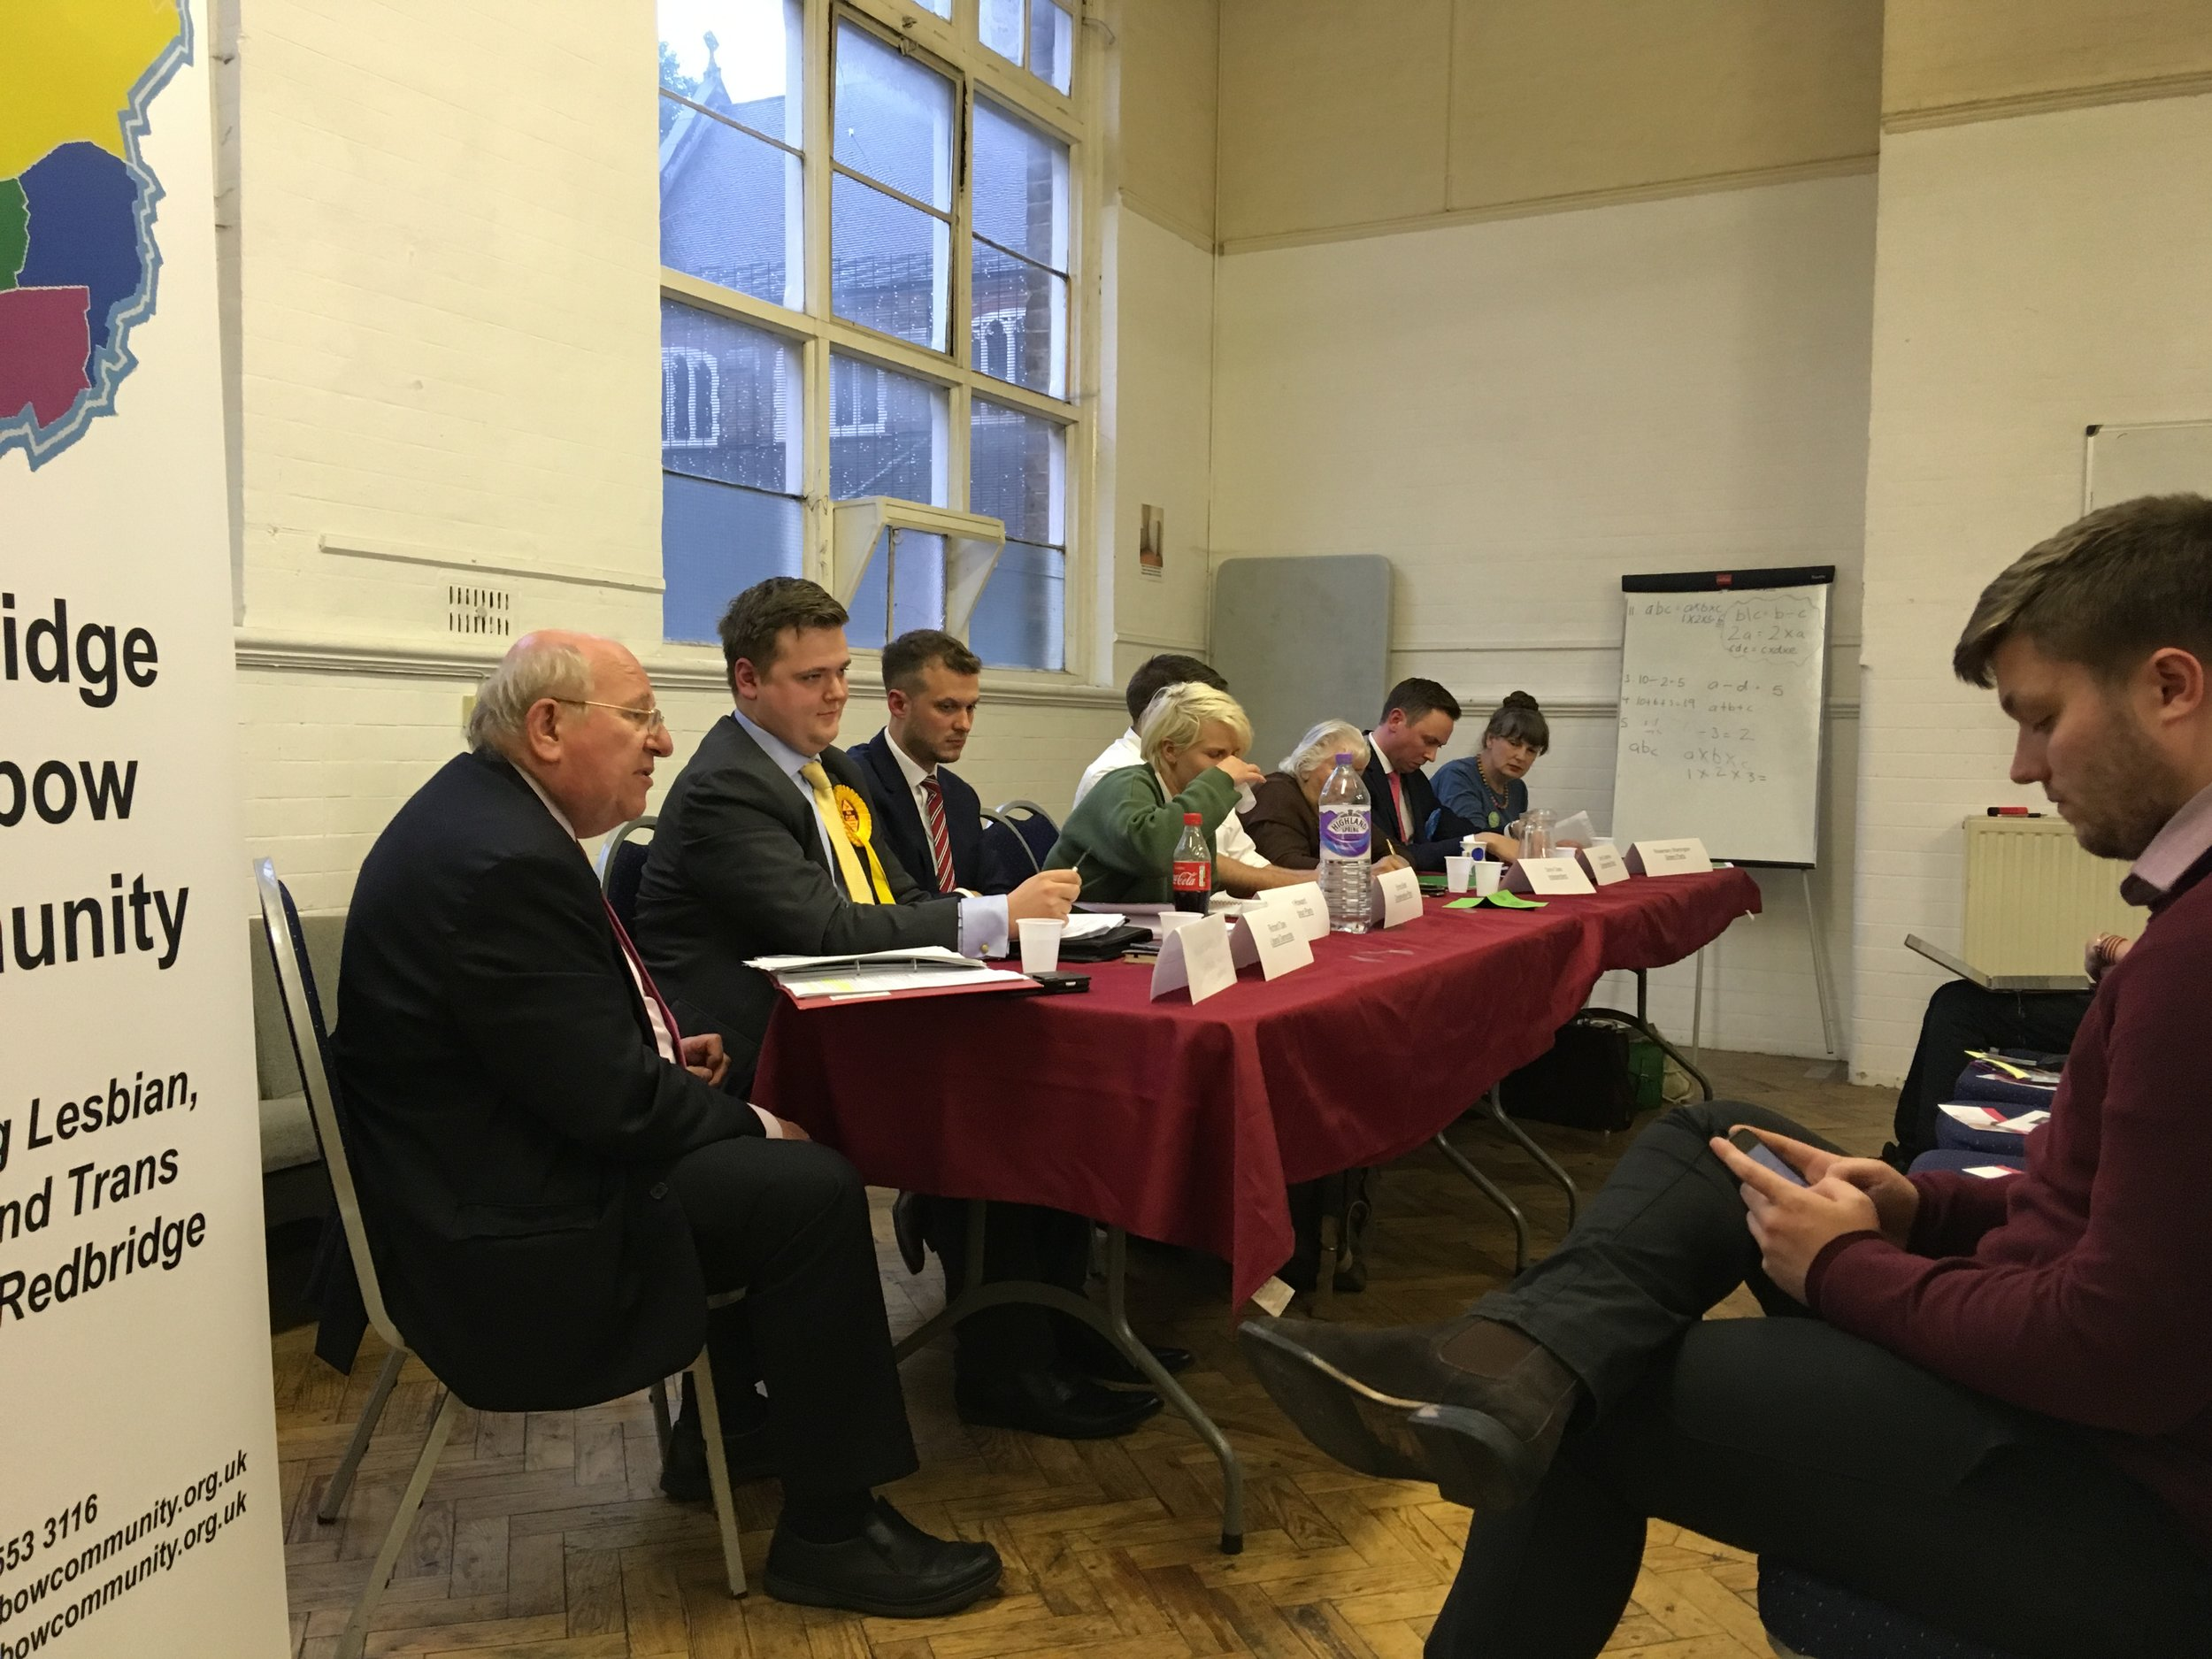 Mike Gapes and candidates